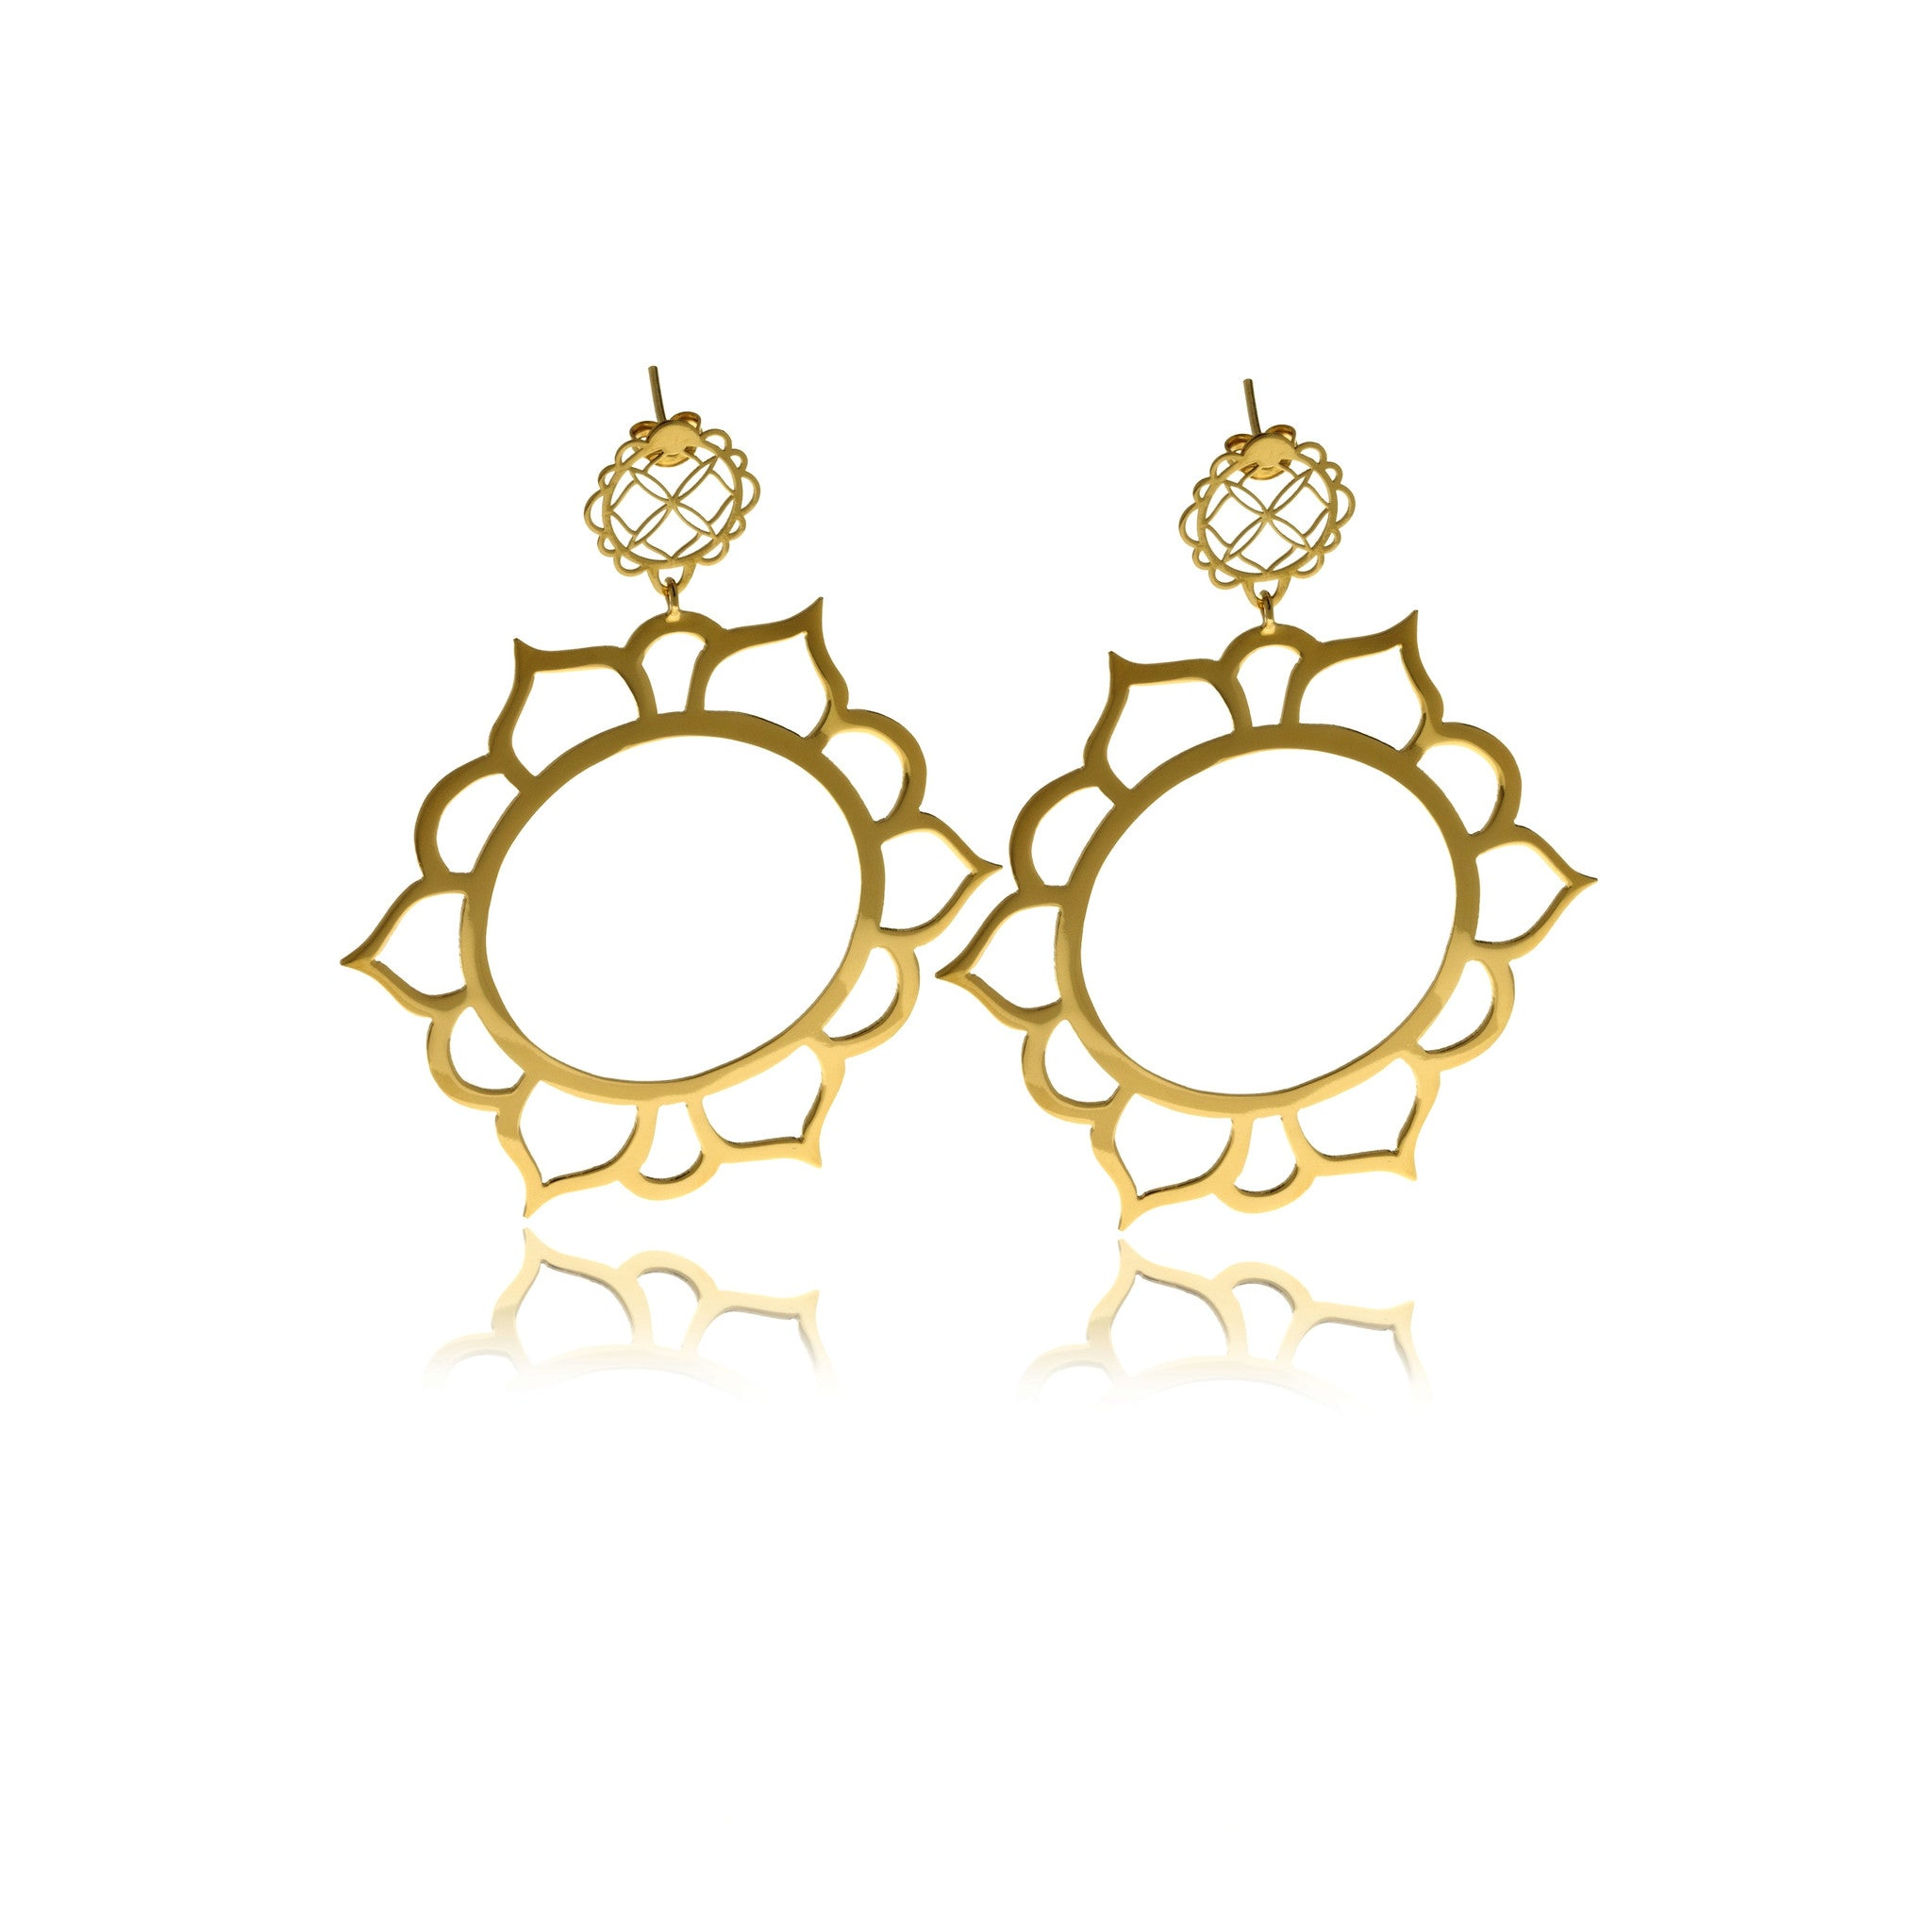 Signature Gold Earrings - MCK Brands